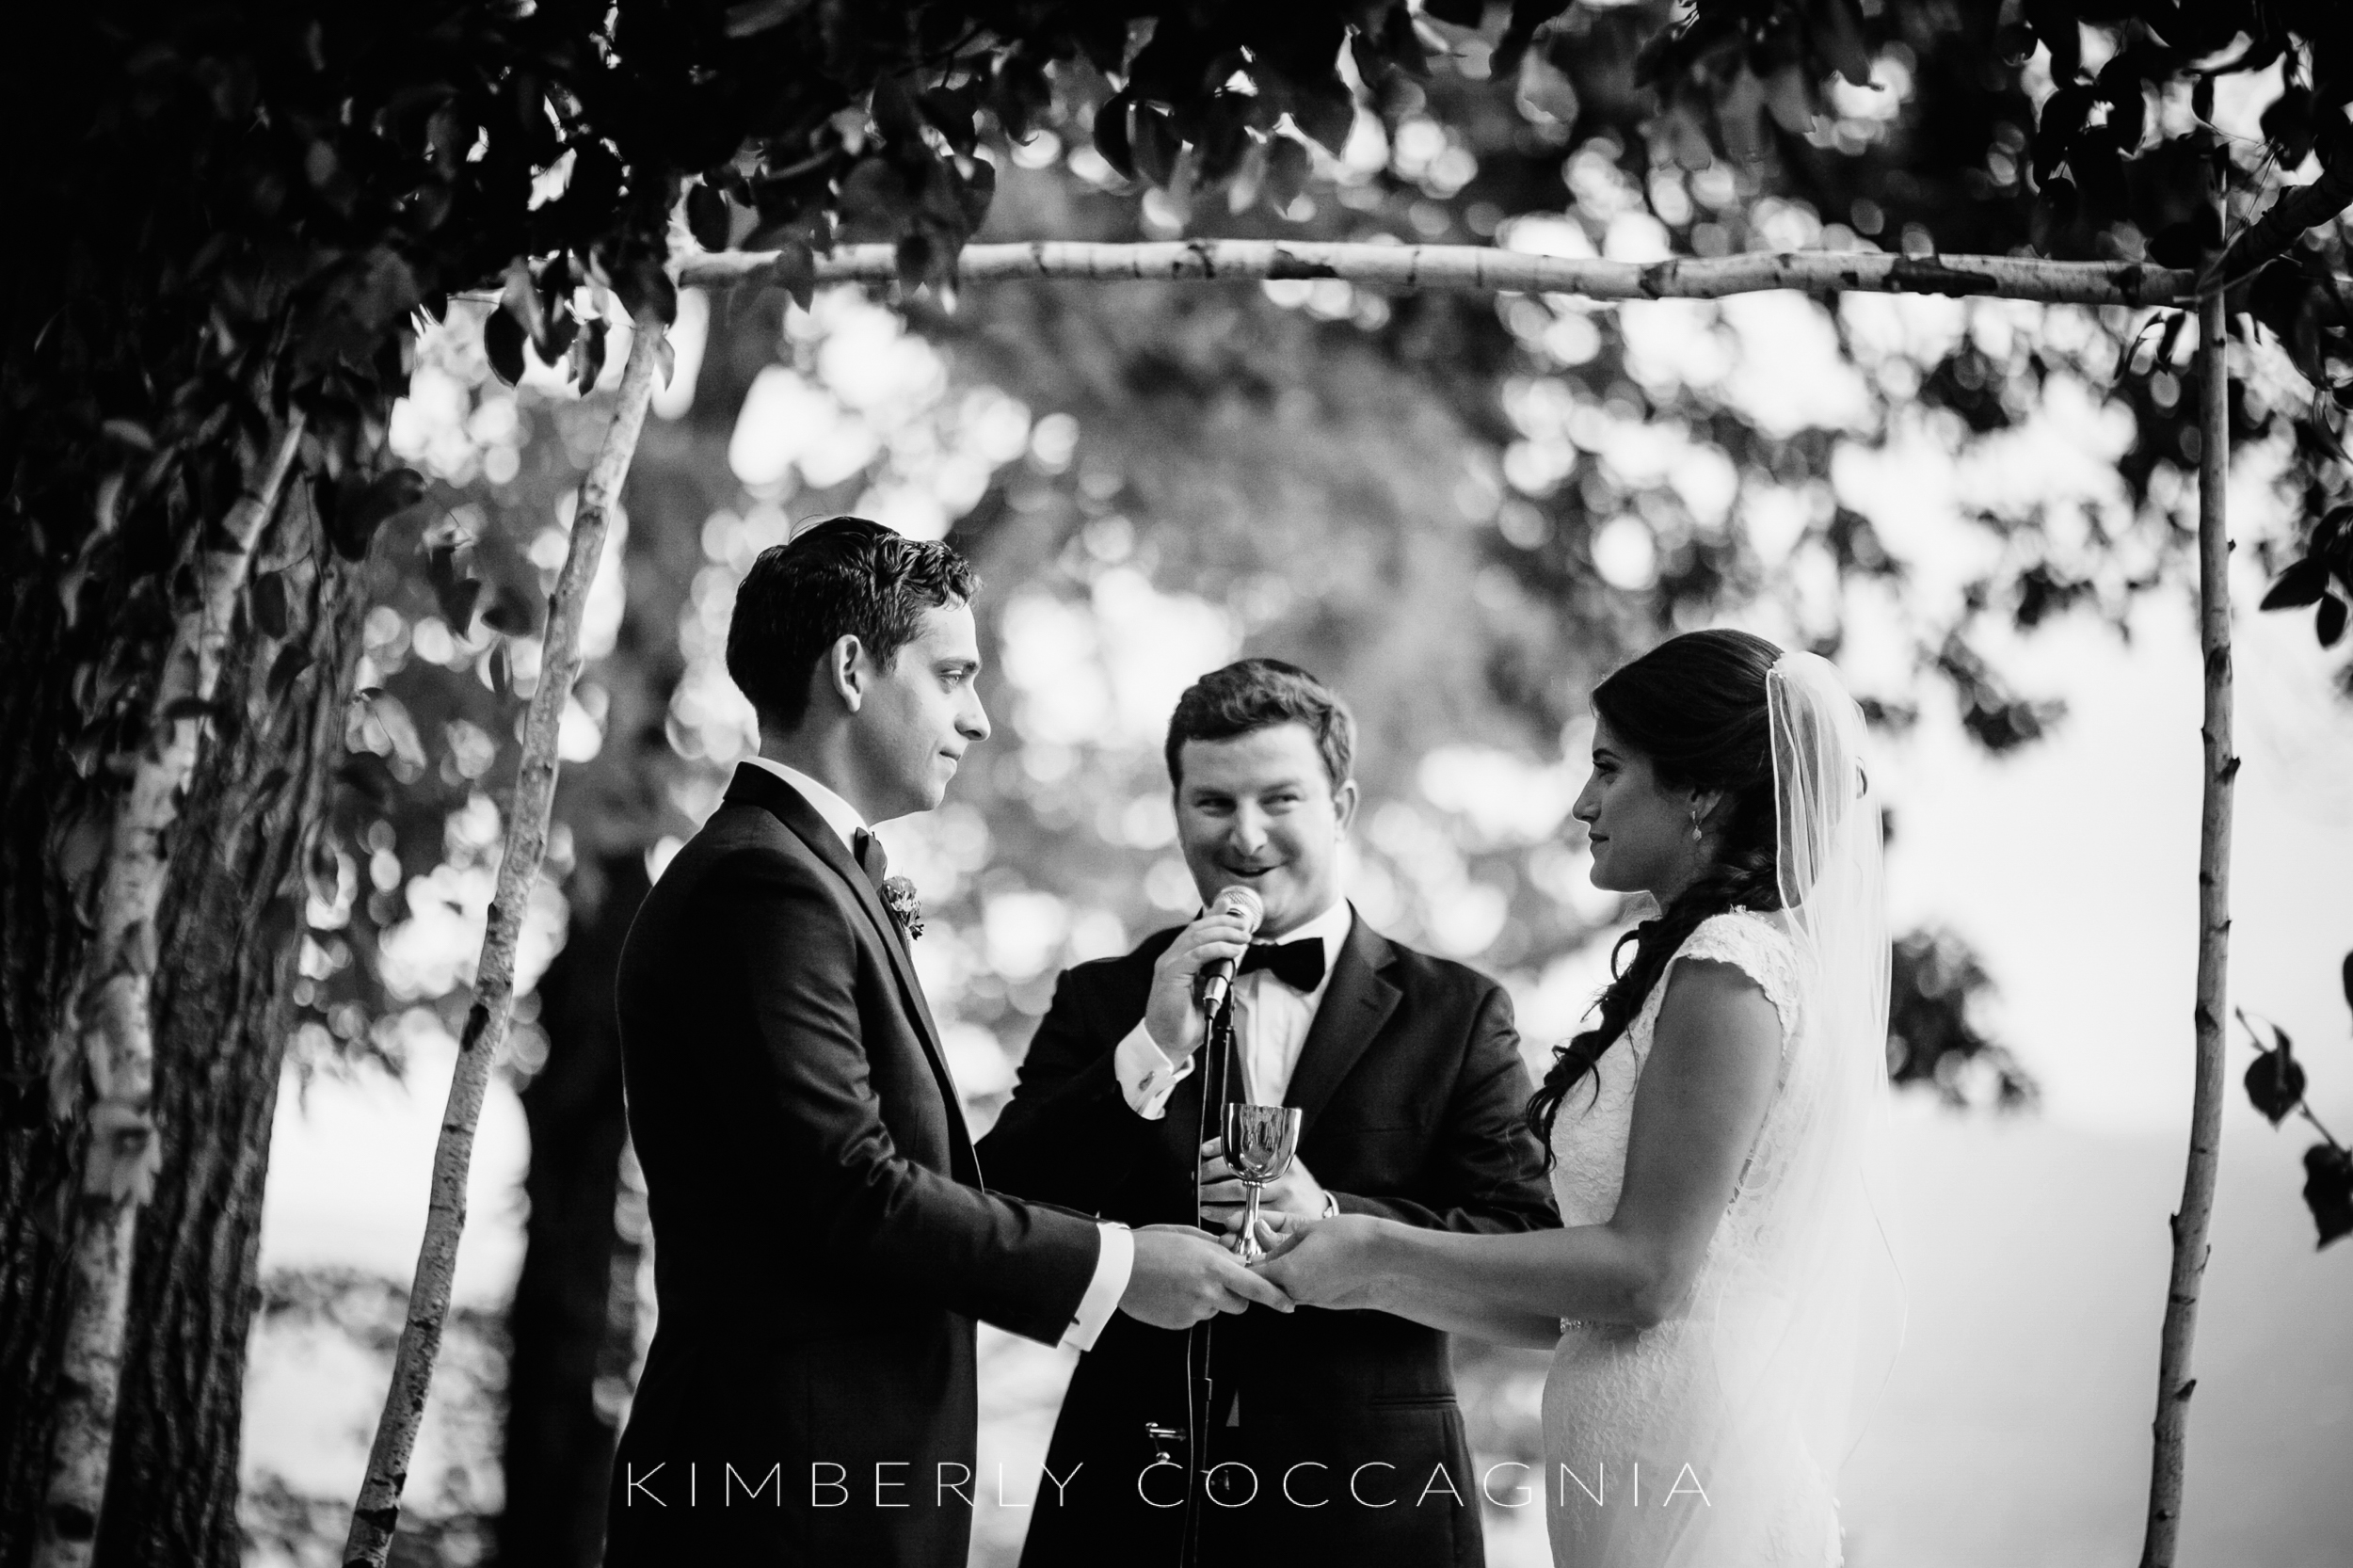 Kimberly+Coccagnia+Hudson+Valley+Wedding+Photographer-71.JPG